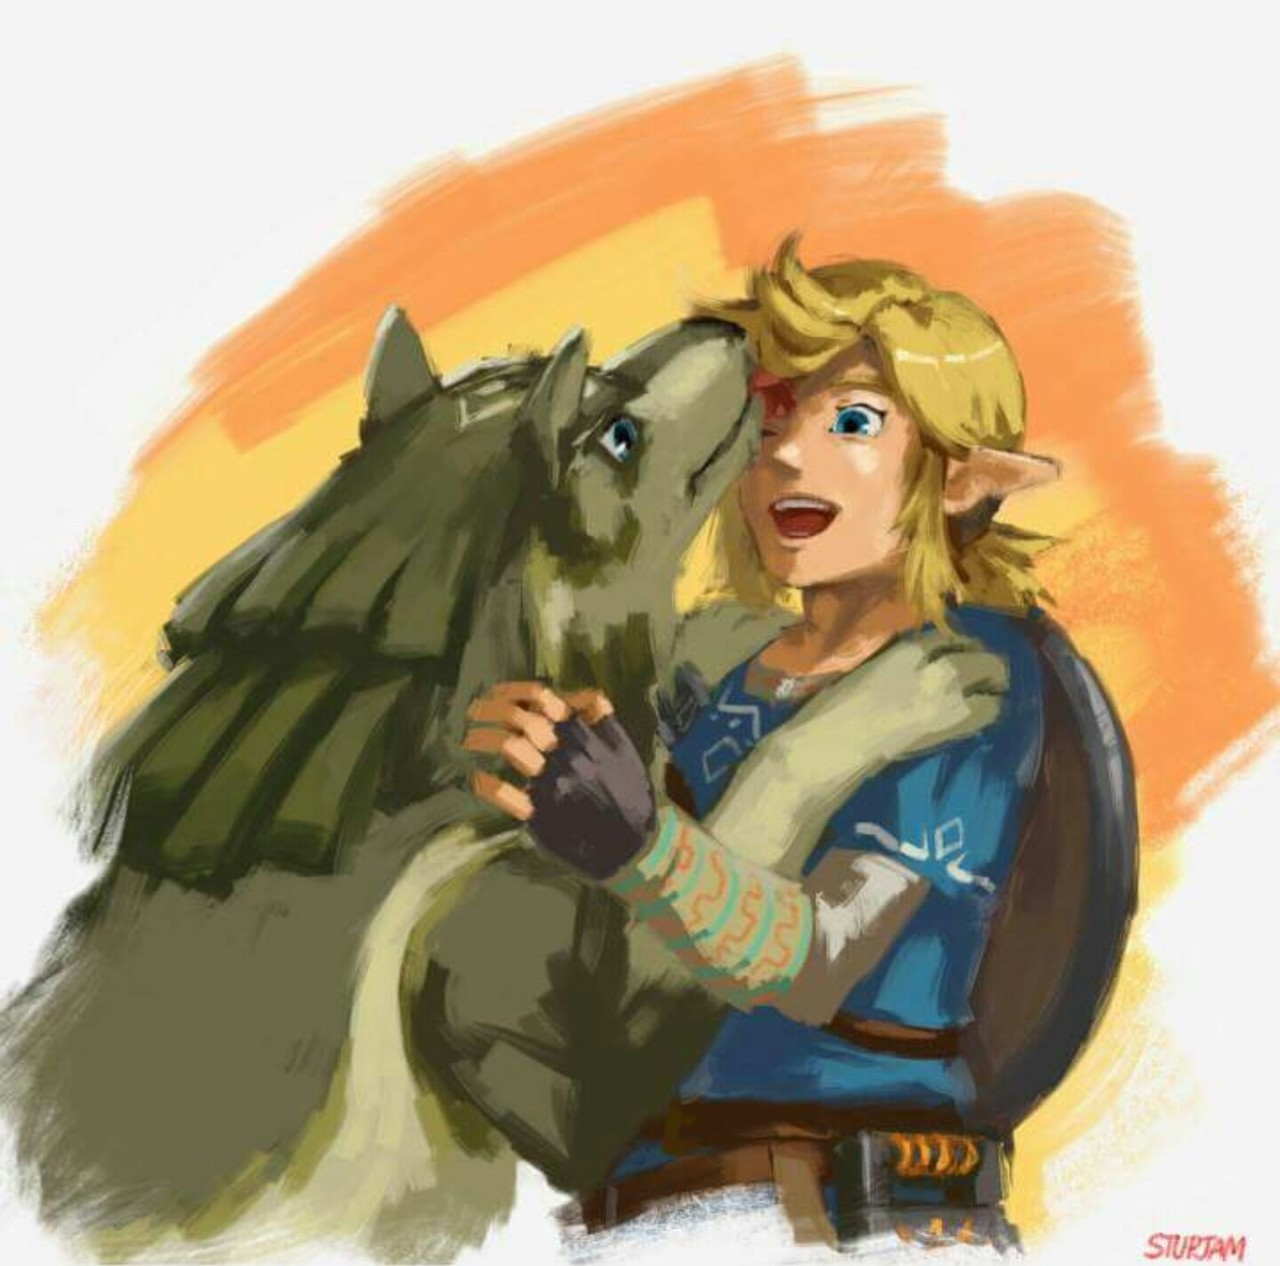 Adorable Fanart From Botw Uploaded By Just Someone